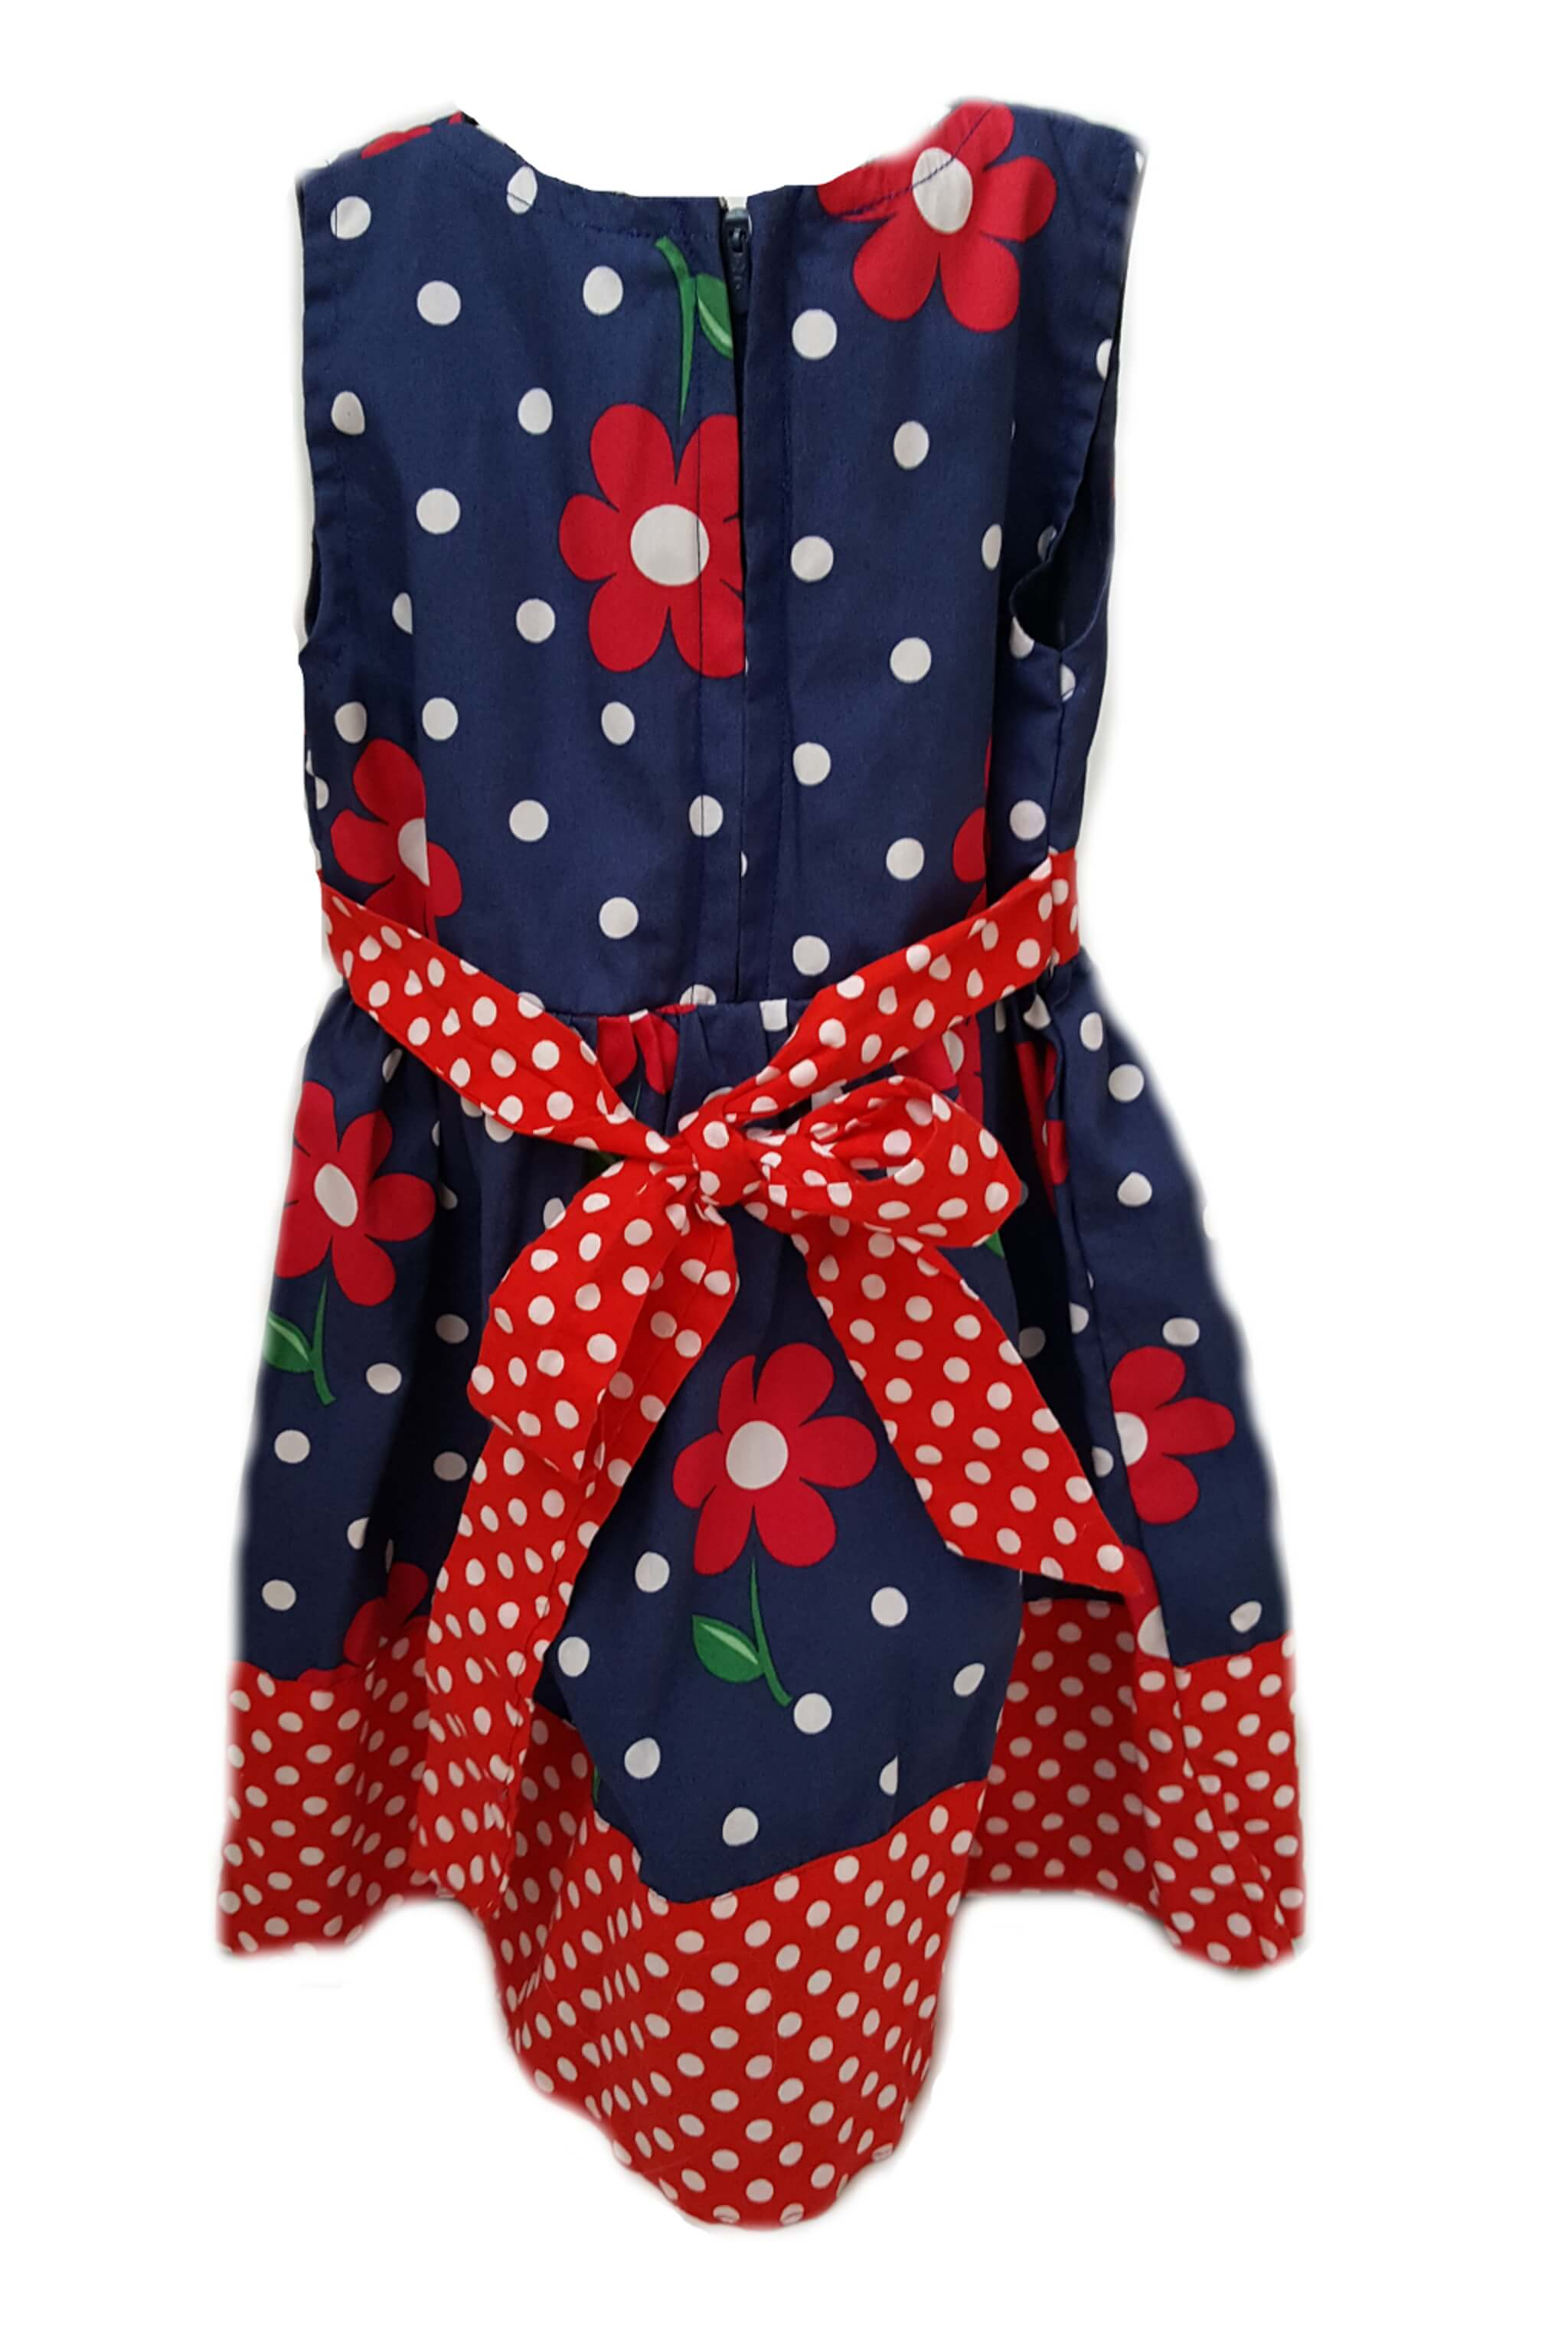 Back of navy blue with red floral print dress and red polka dot hem and sash to tie at waist for little girls